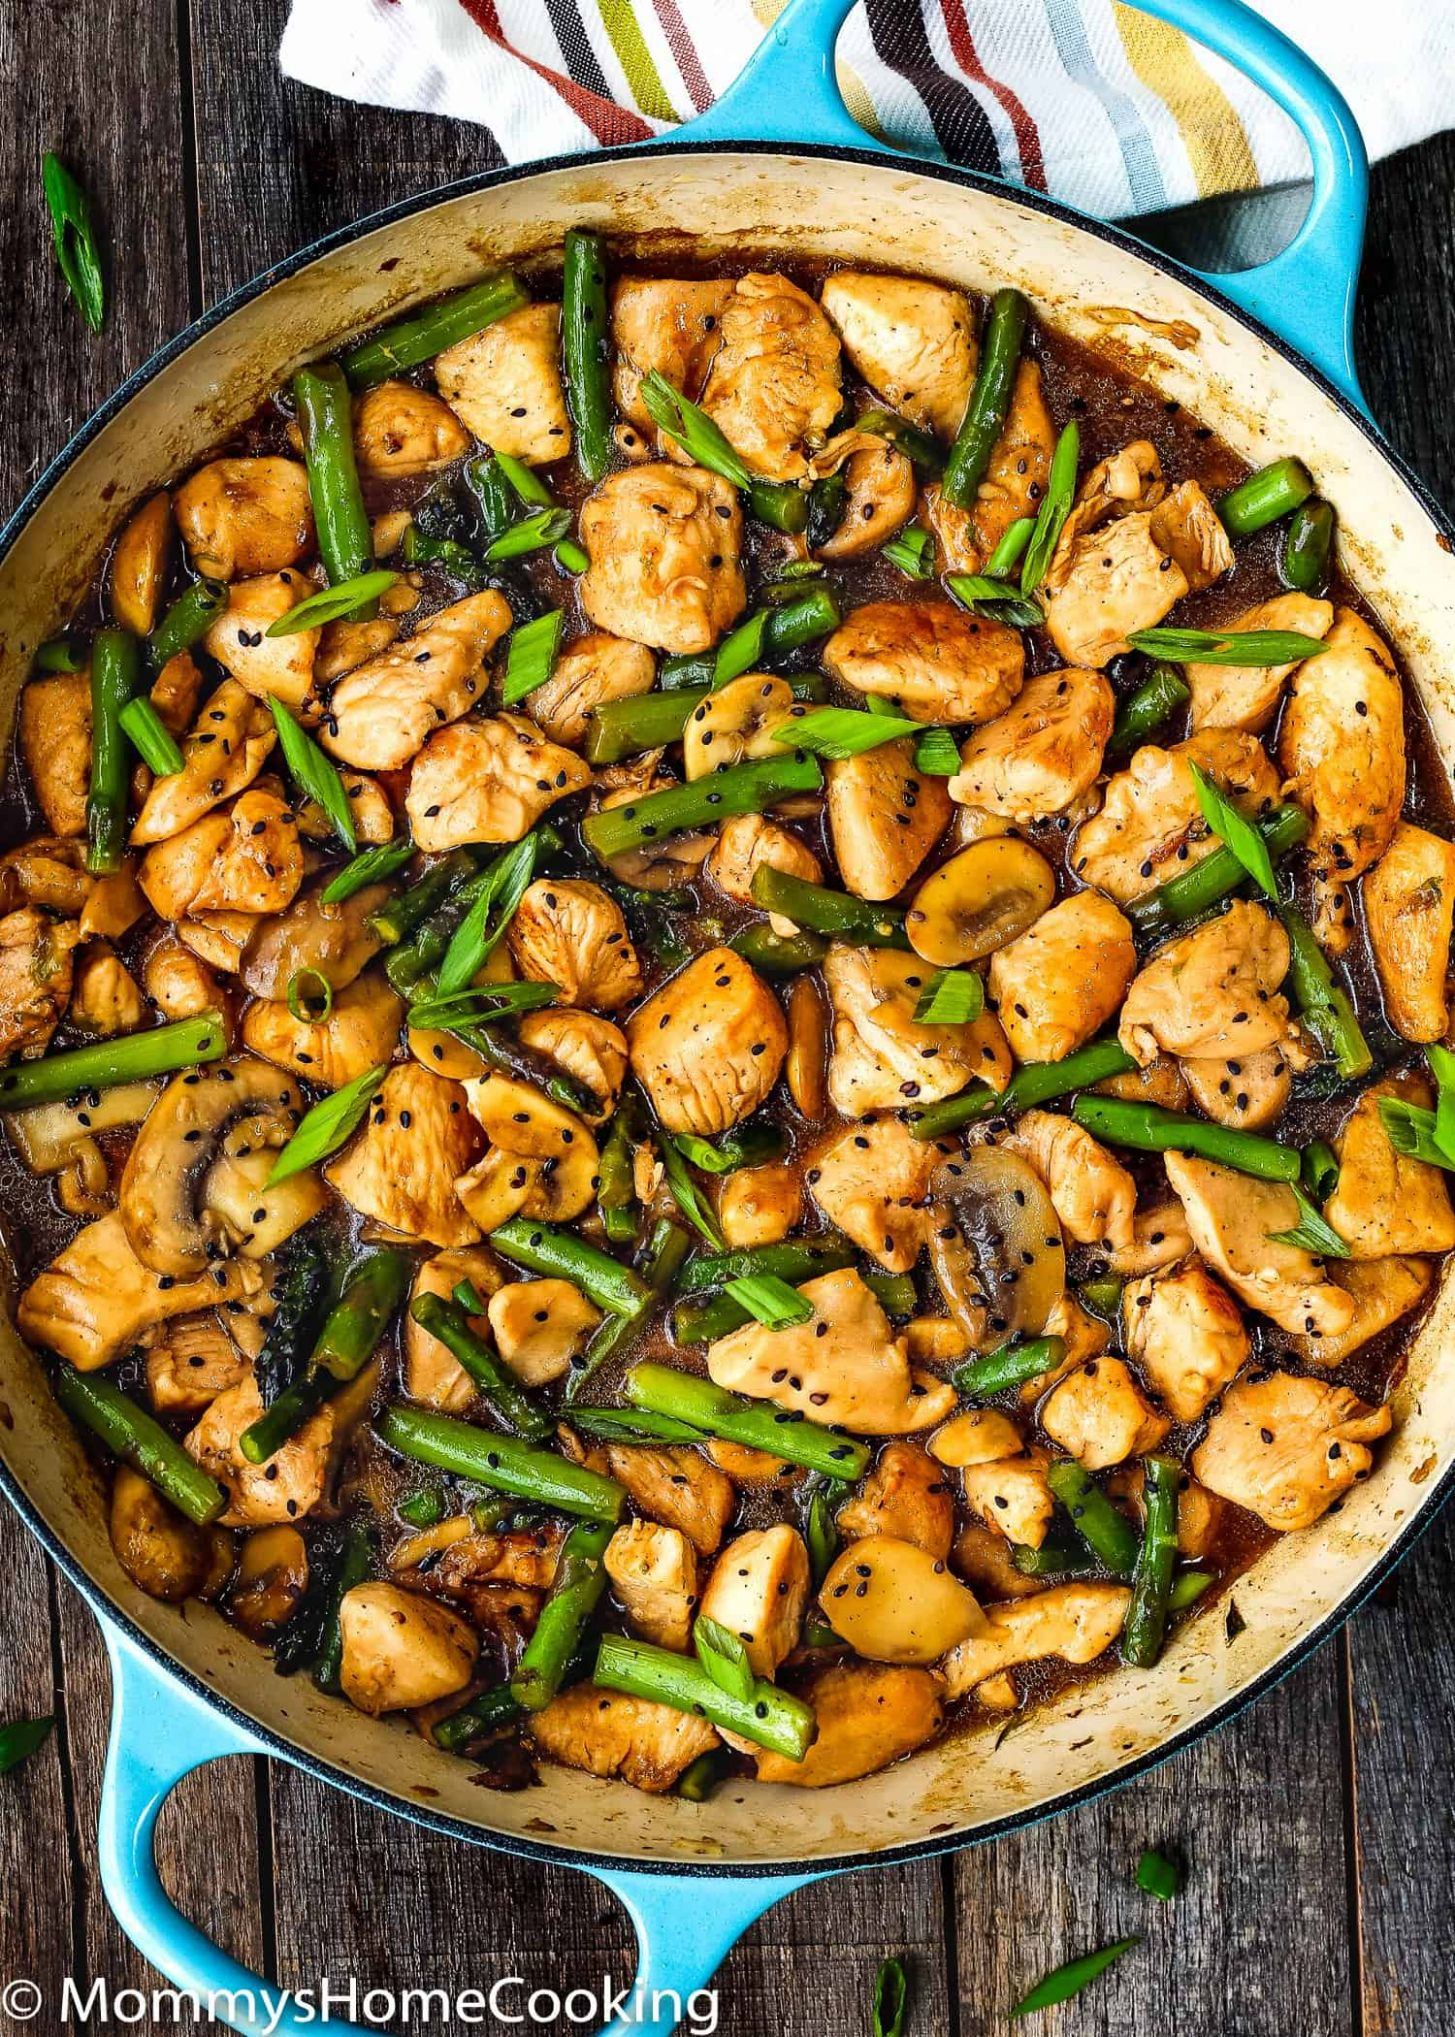 Easy Healthy Chicken and Asparagus Skillet - Healthy Recipes Dinner